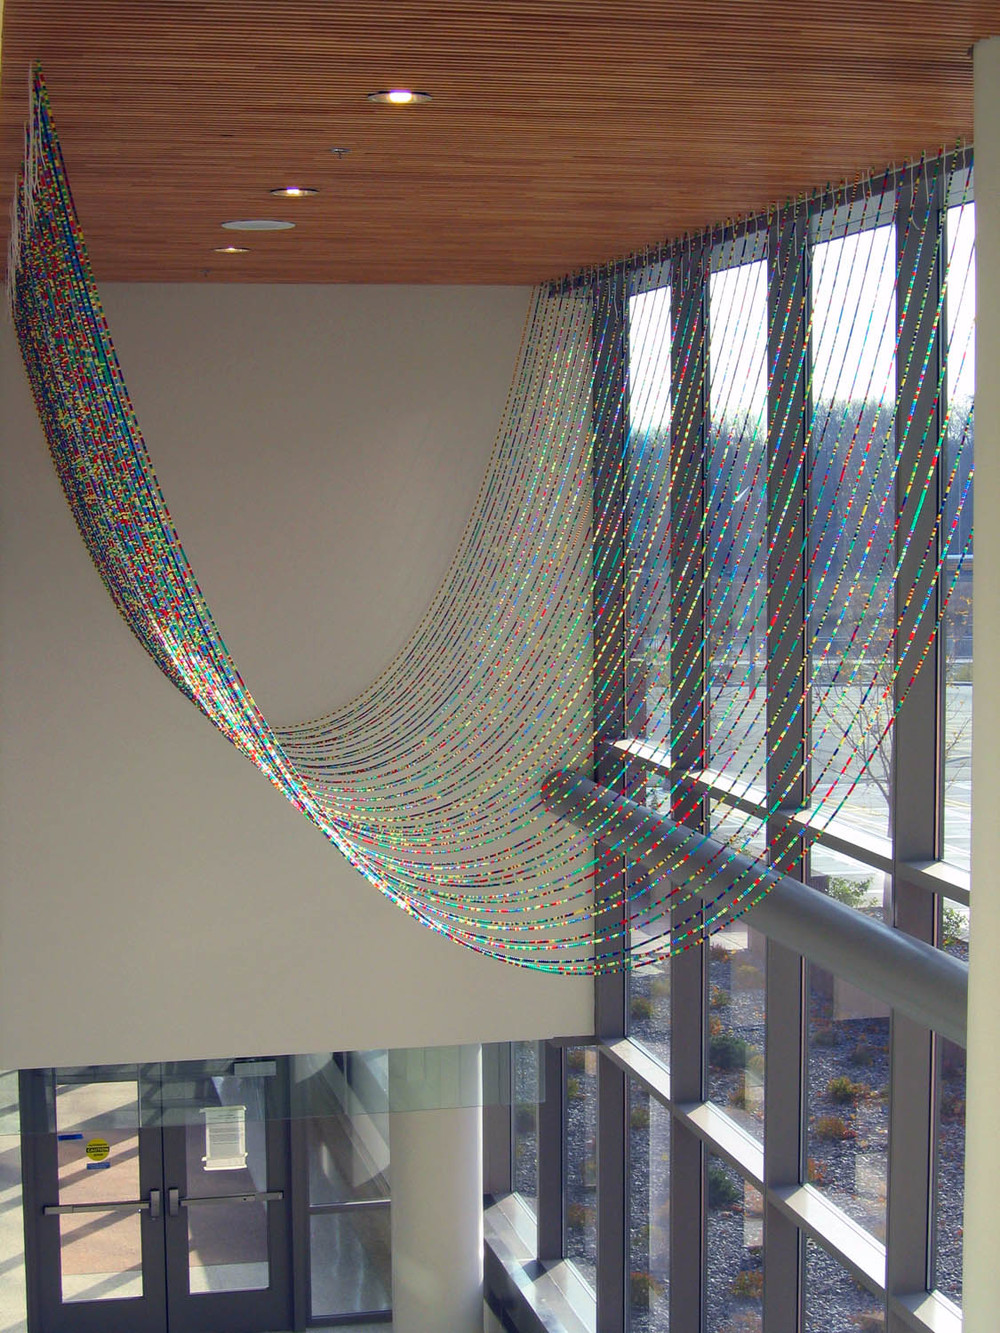 Gene Pairs ... With Ellipses, 2003, Plastic pony beads and nylon string, 35 x 25' (Installed at the Bureau of Criminal Investigation in Minneapolis, MN)